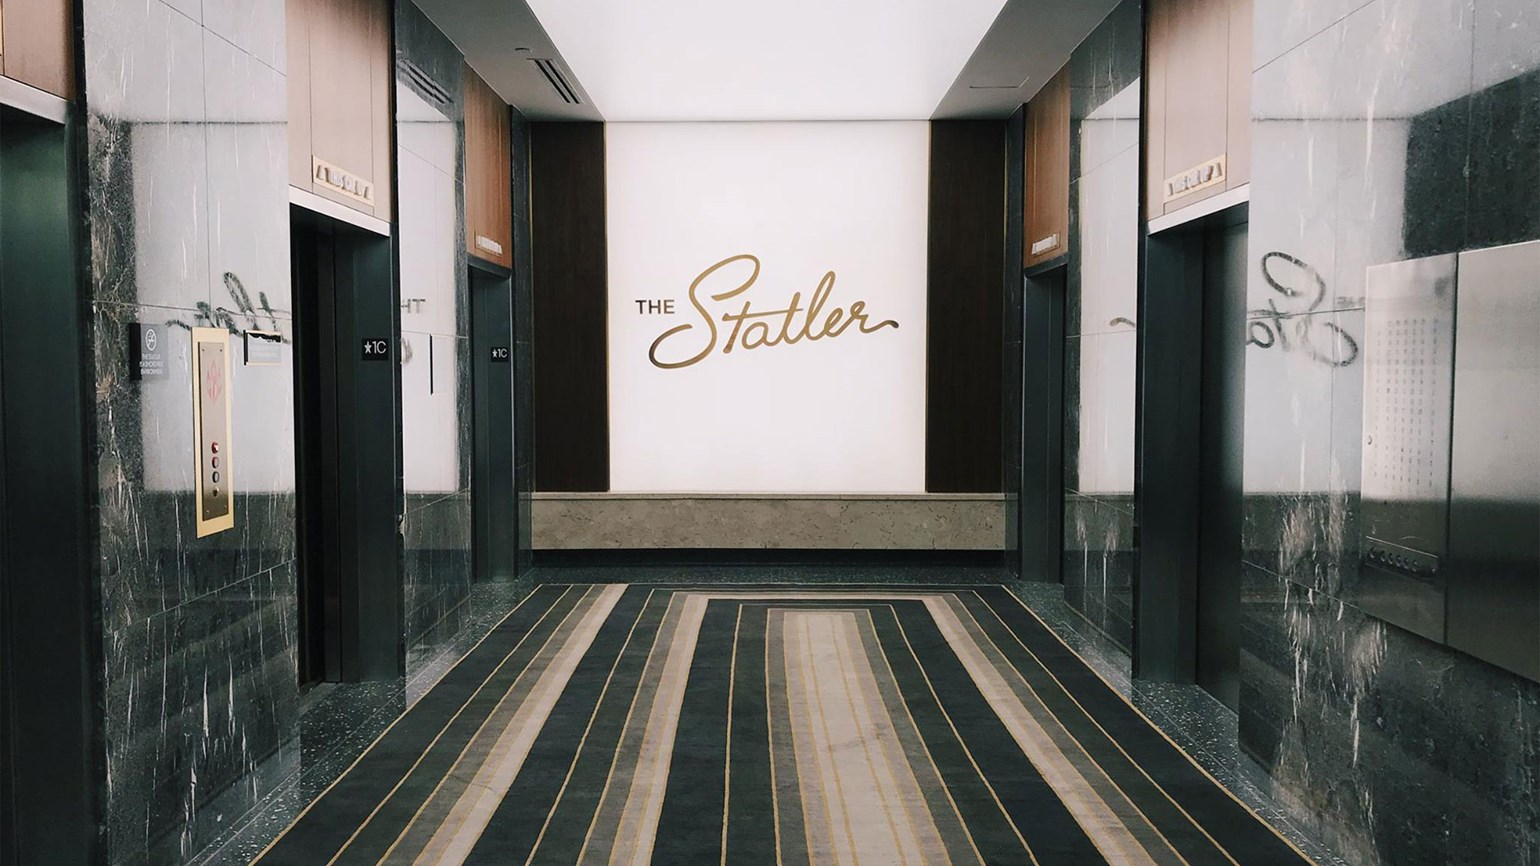 The Statler is back in Dallas